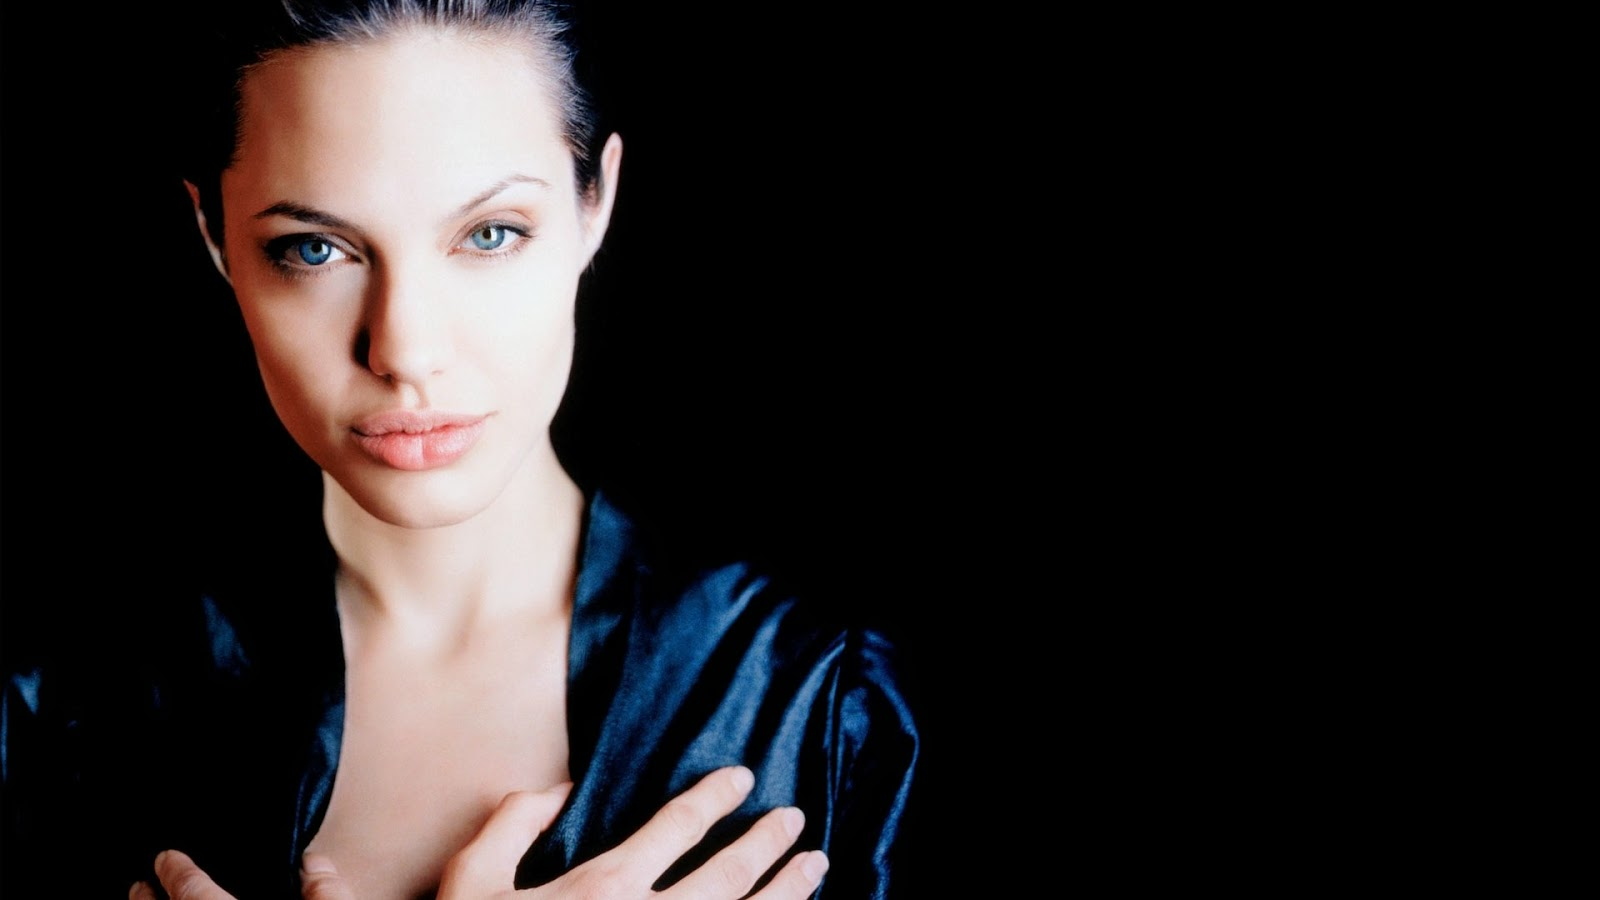 HD Wallpapers Angelina Jolie Sweet And Beautiful HD Wallpapers 1600x900